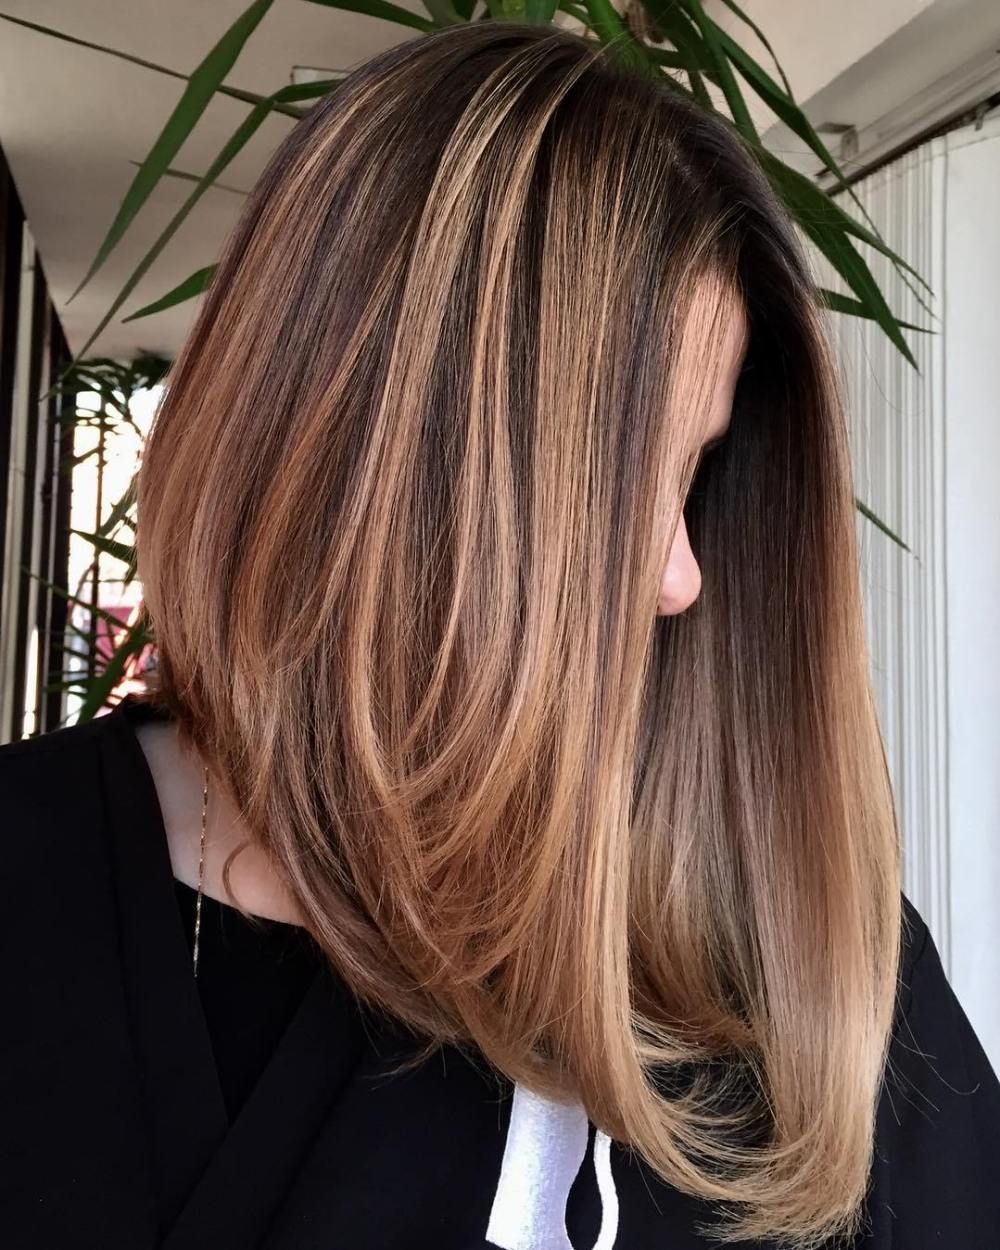 20 chic long inverted bobs to inspire your 2020 makeover